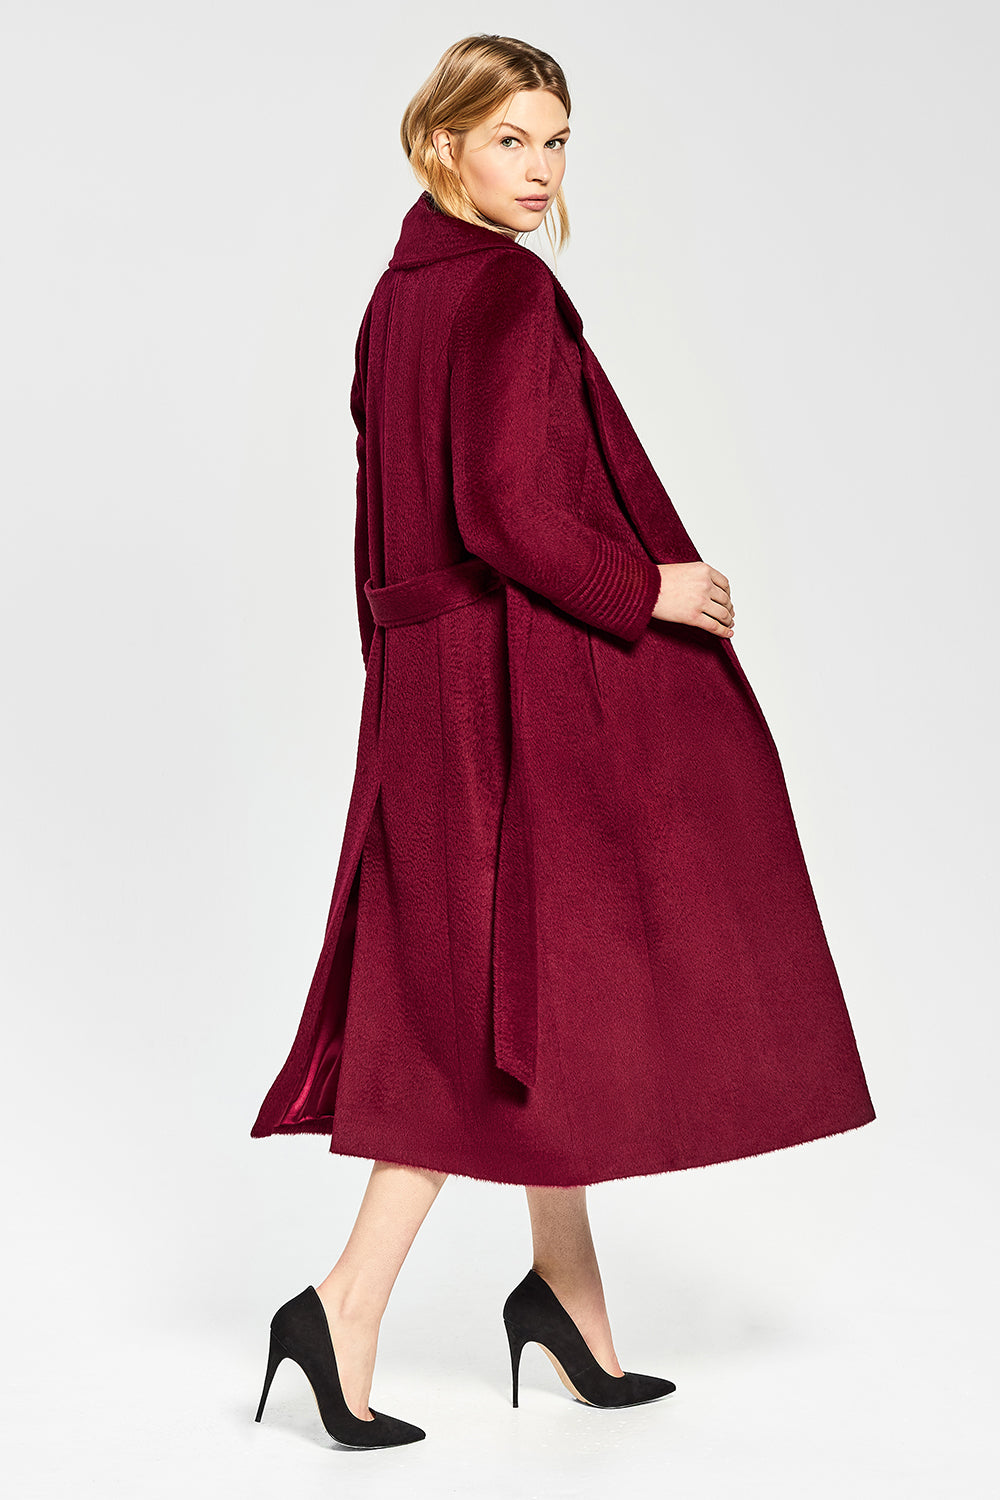 Sentaler Suri Alpaca Long Notched Collar Wrap Coat featured in Suri Alpaca and available in Bordeaux. Seen open.